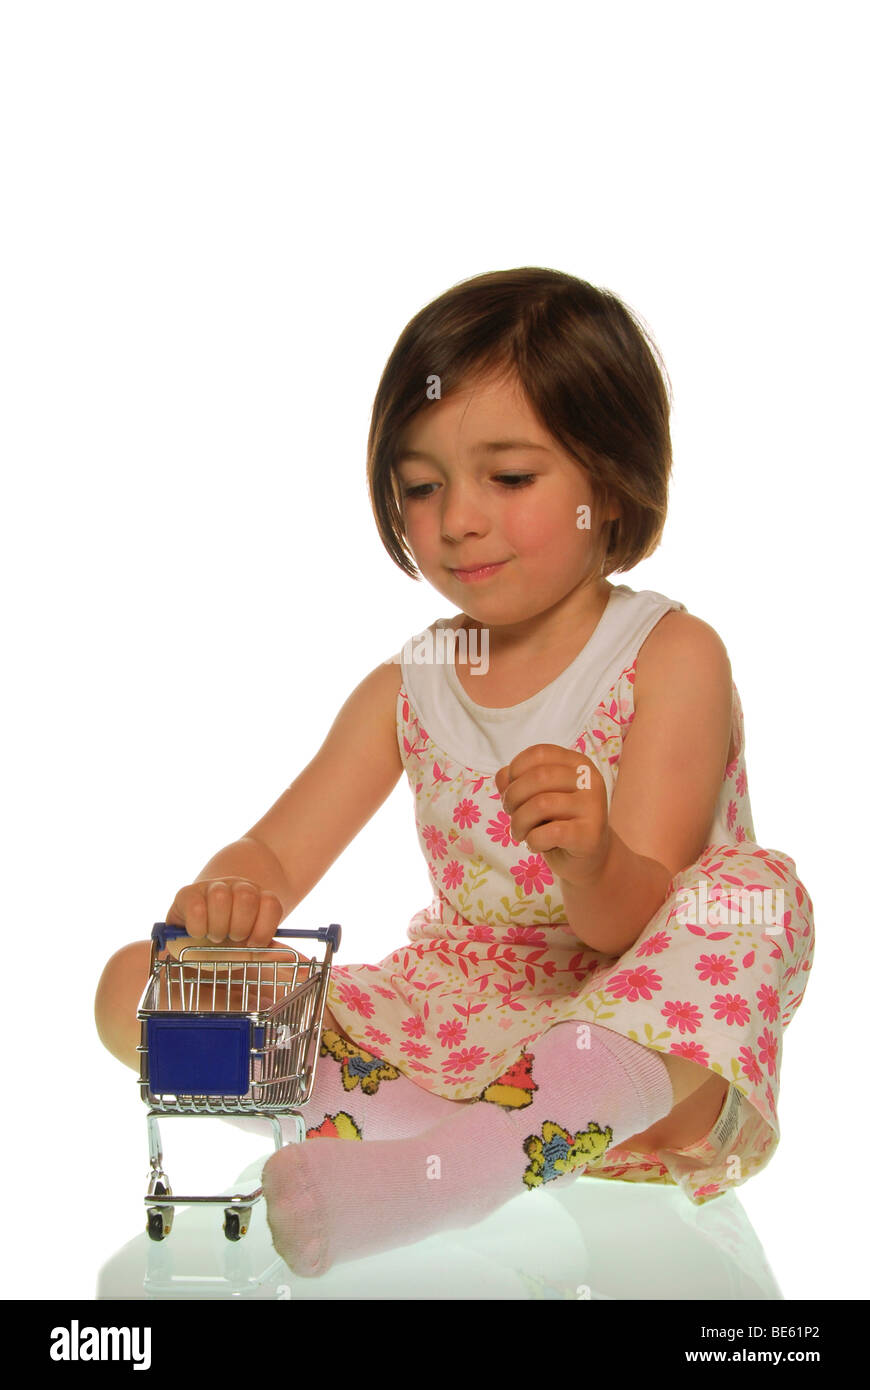 Four-year-old girl with a cart, symbolic image for easy shopping - Stock Image